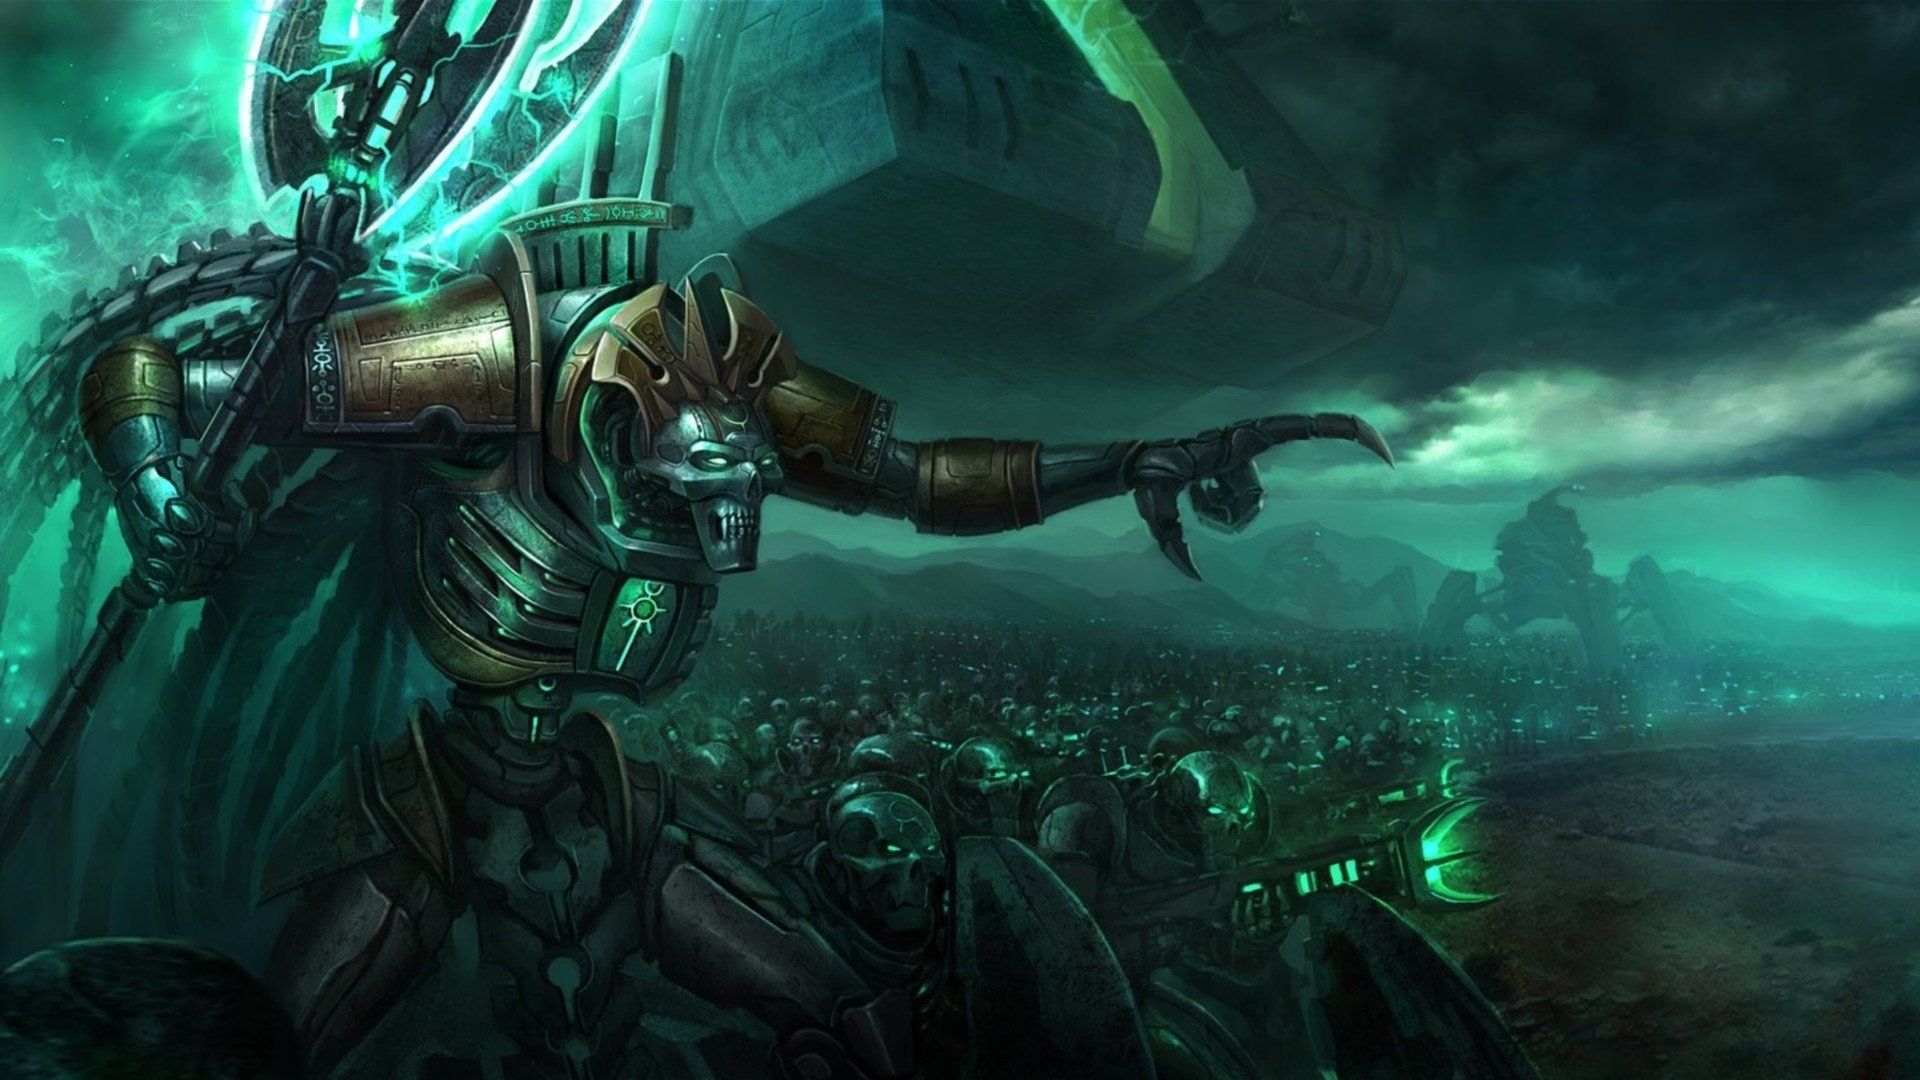 101 Warhammer 40K HD Wallpapers Backgrounds   Page 1920x1080